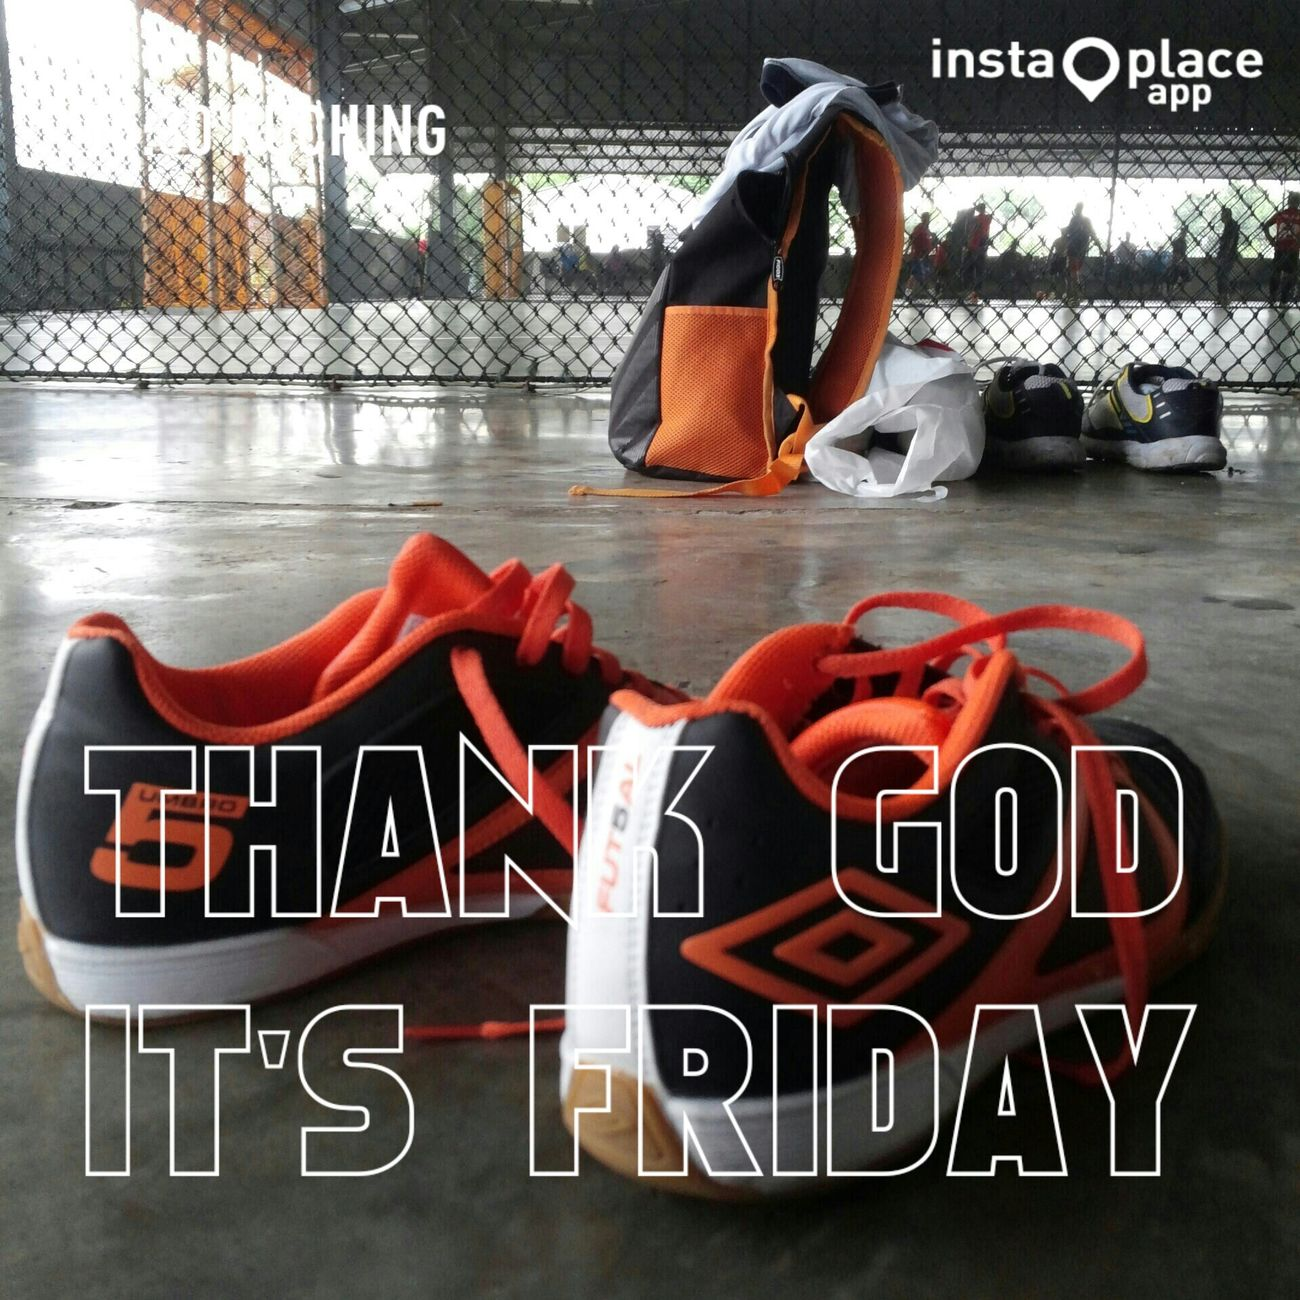 Futsal Playing Futsal Umbro Thank God Its FRIDAY!